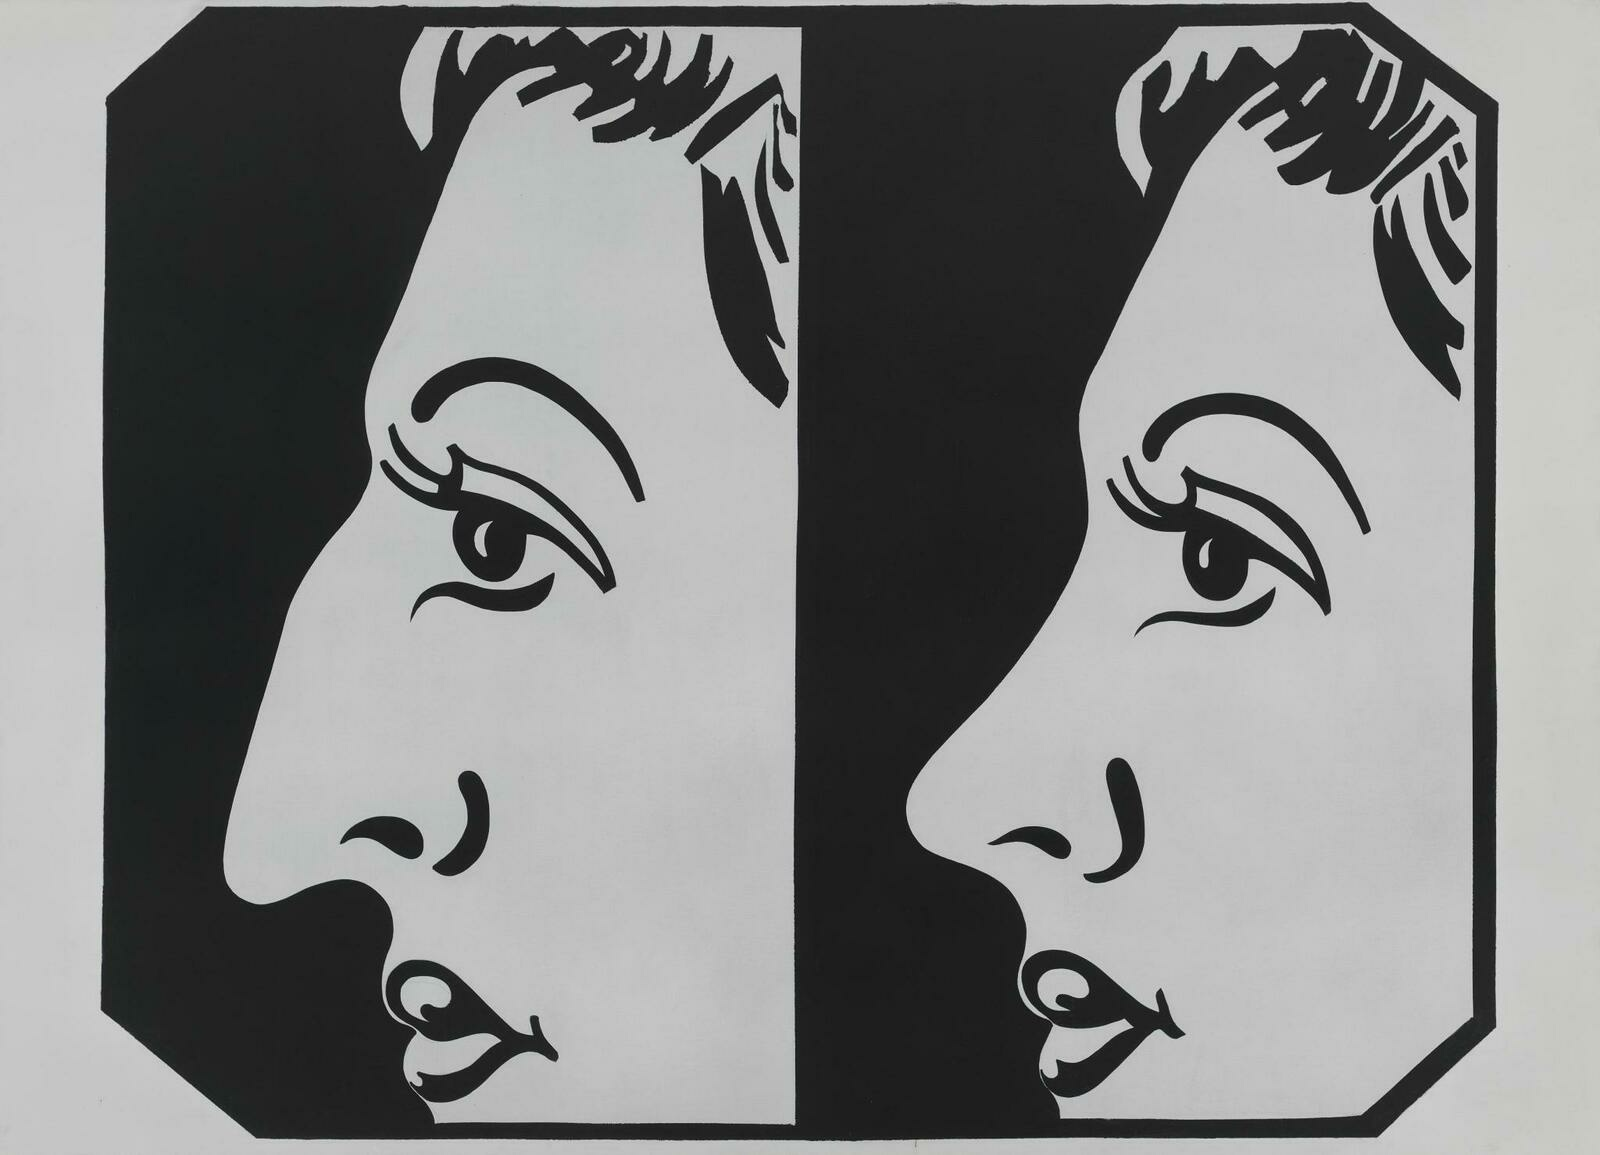 Two juxtaposed profile views of the same woman, one with a large nose and one with a small nose